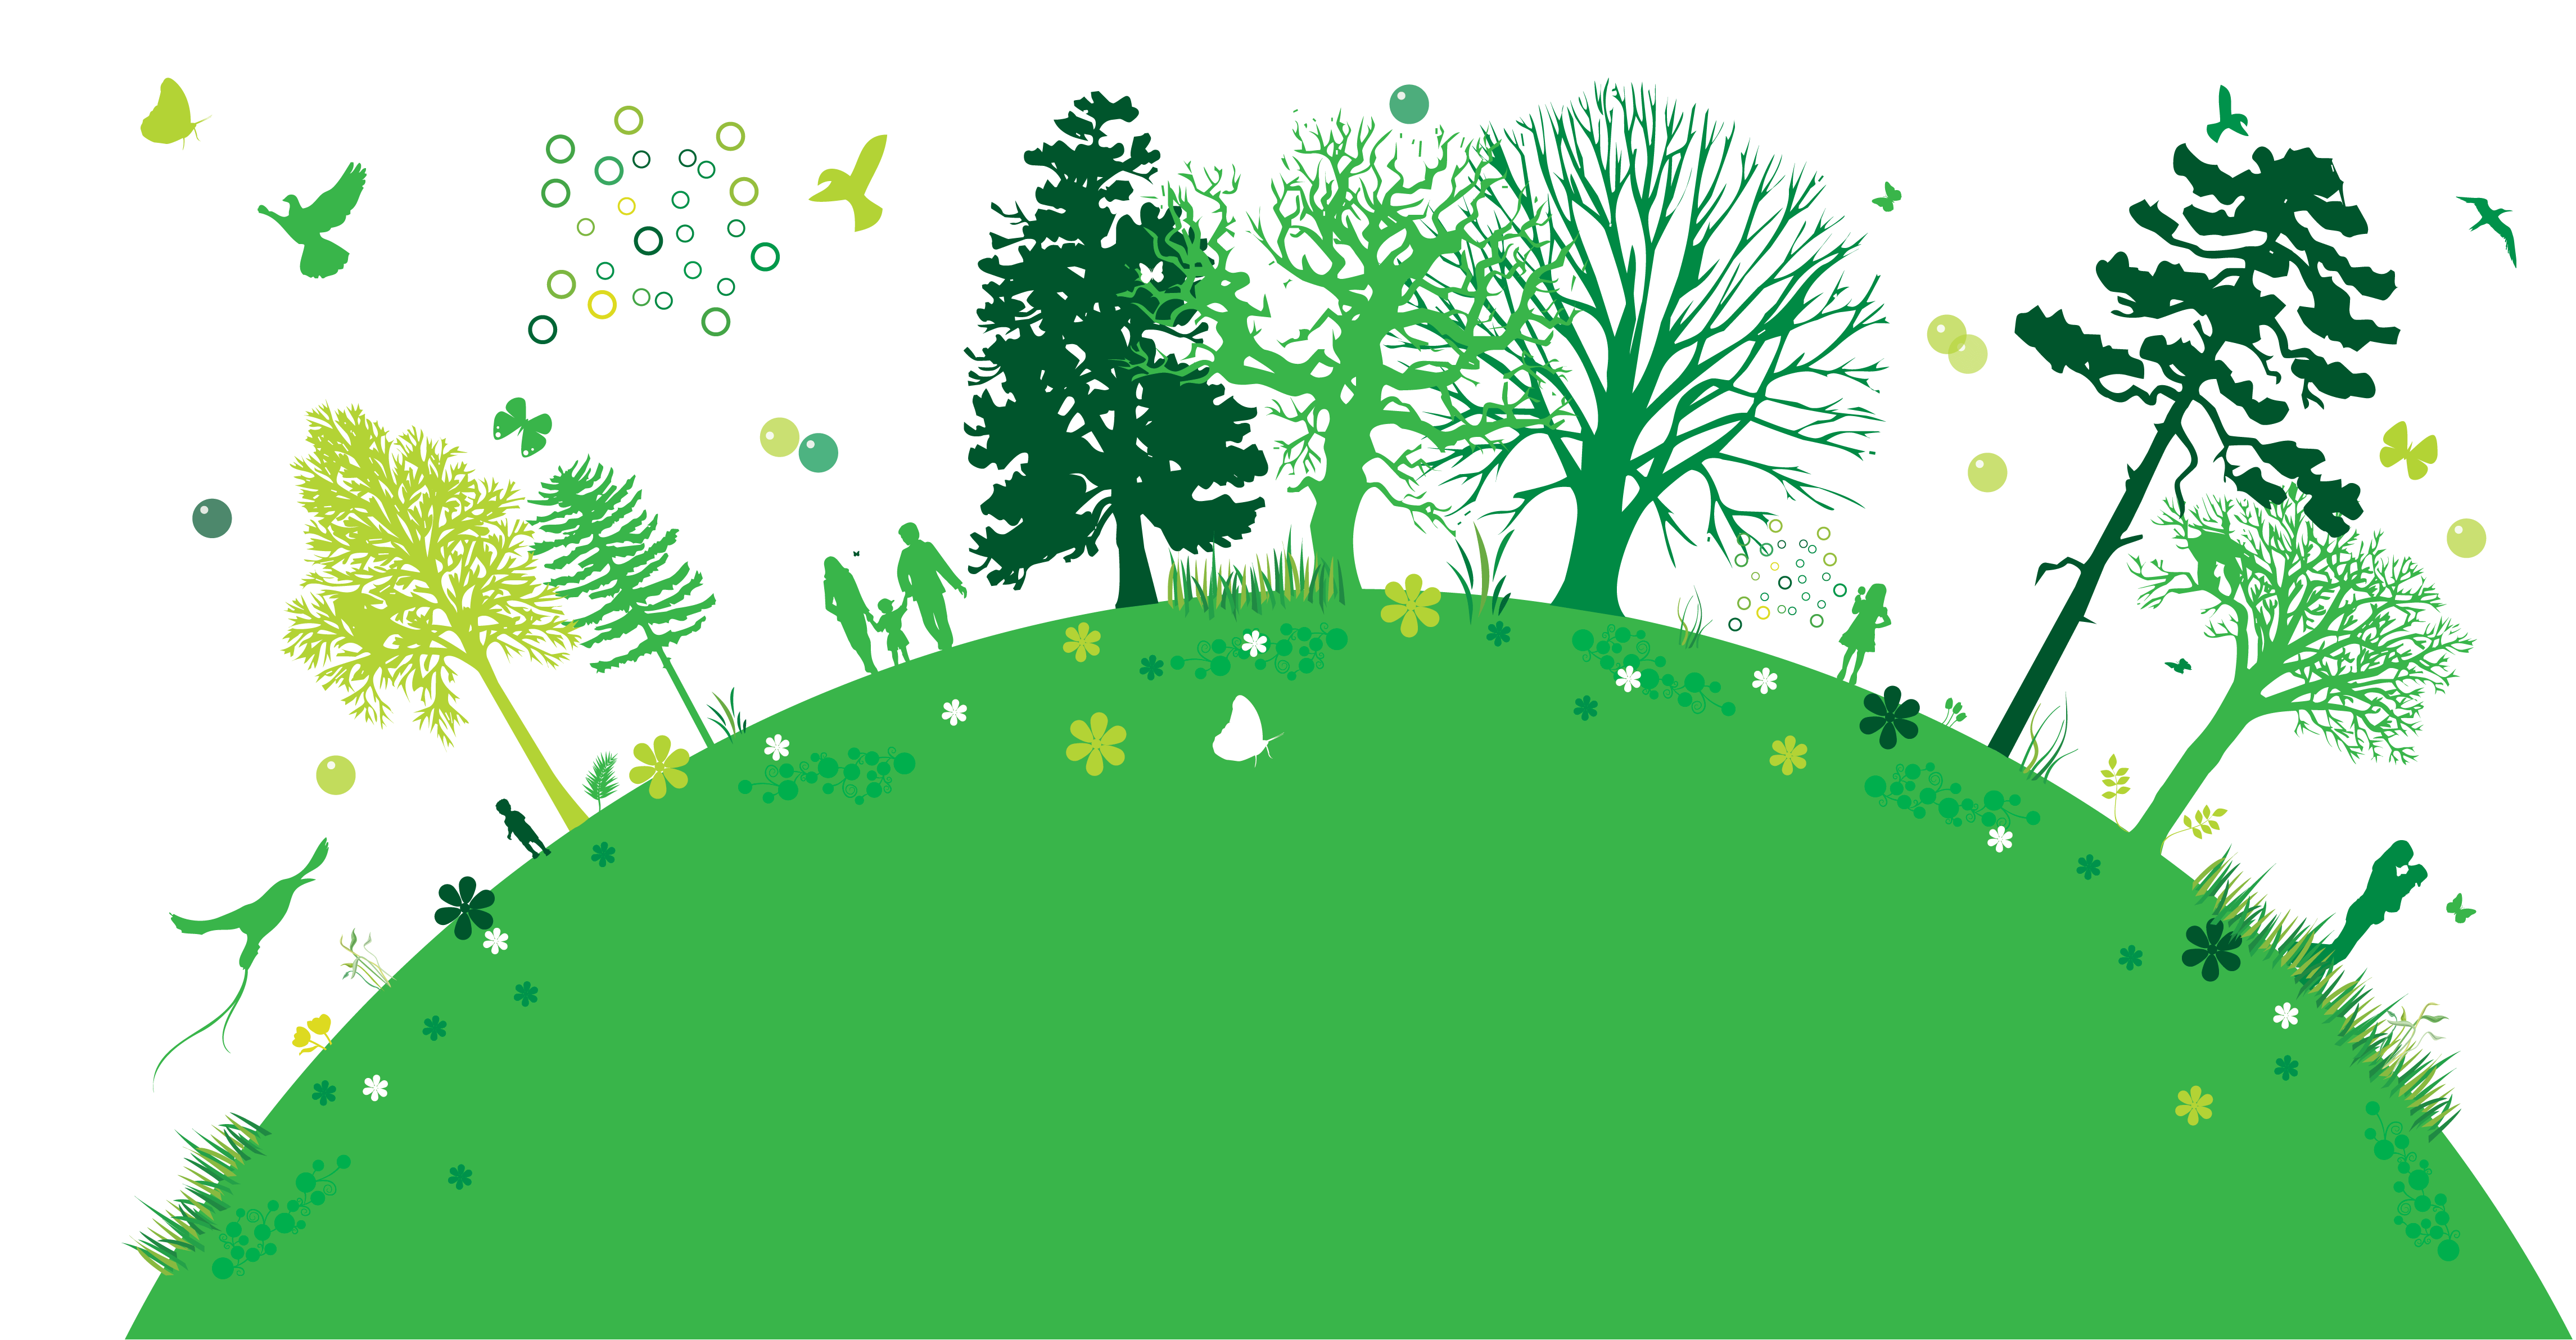 Go-Green-35-Forest.imdex20620.png